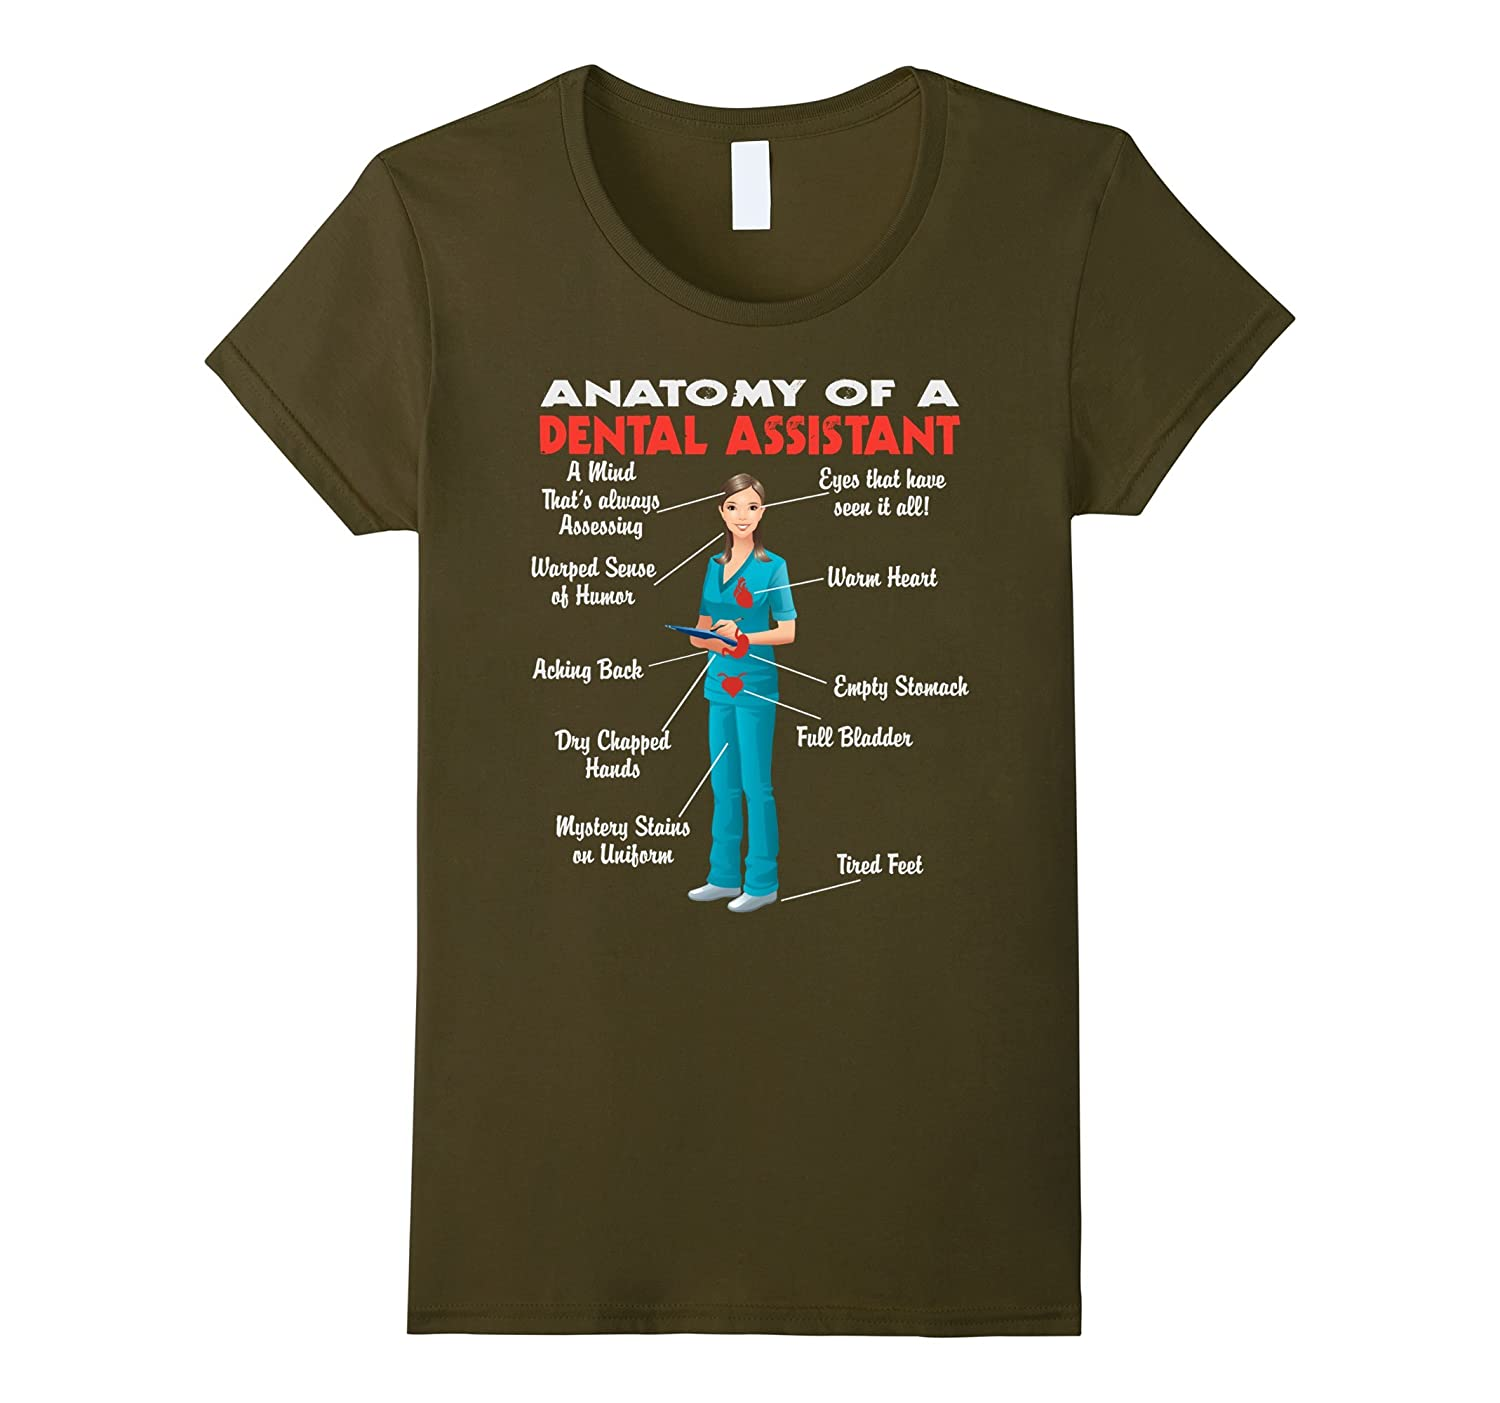 Amazon.com: Anatomy of a Dental Assistant - Funny Dental Assistant ...